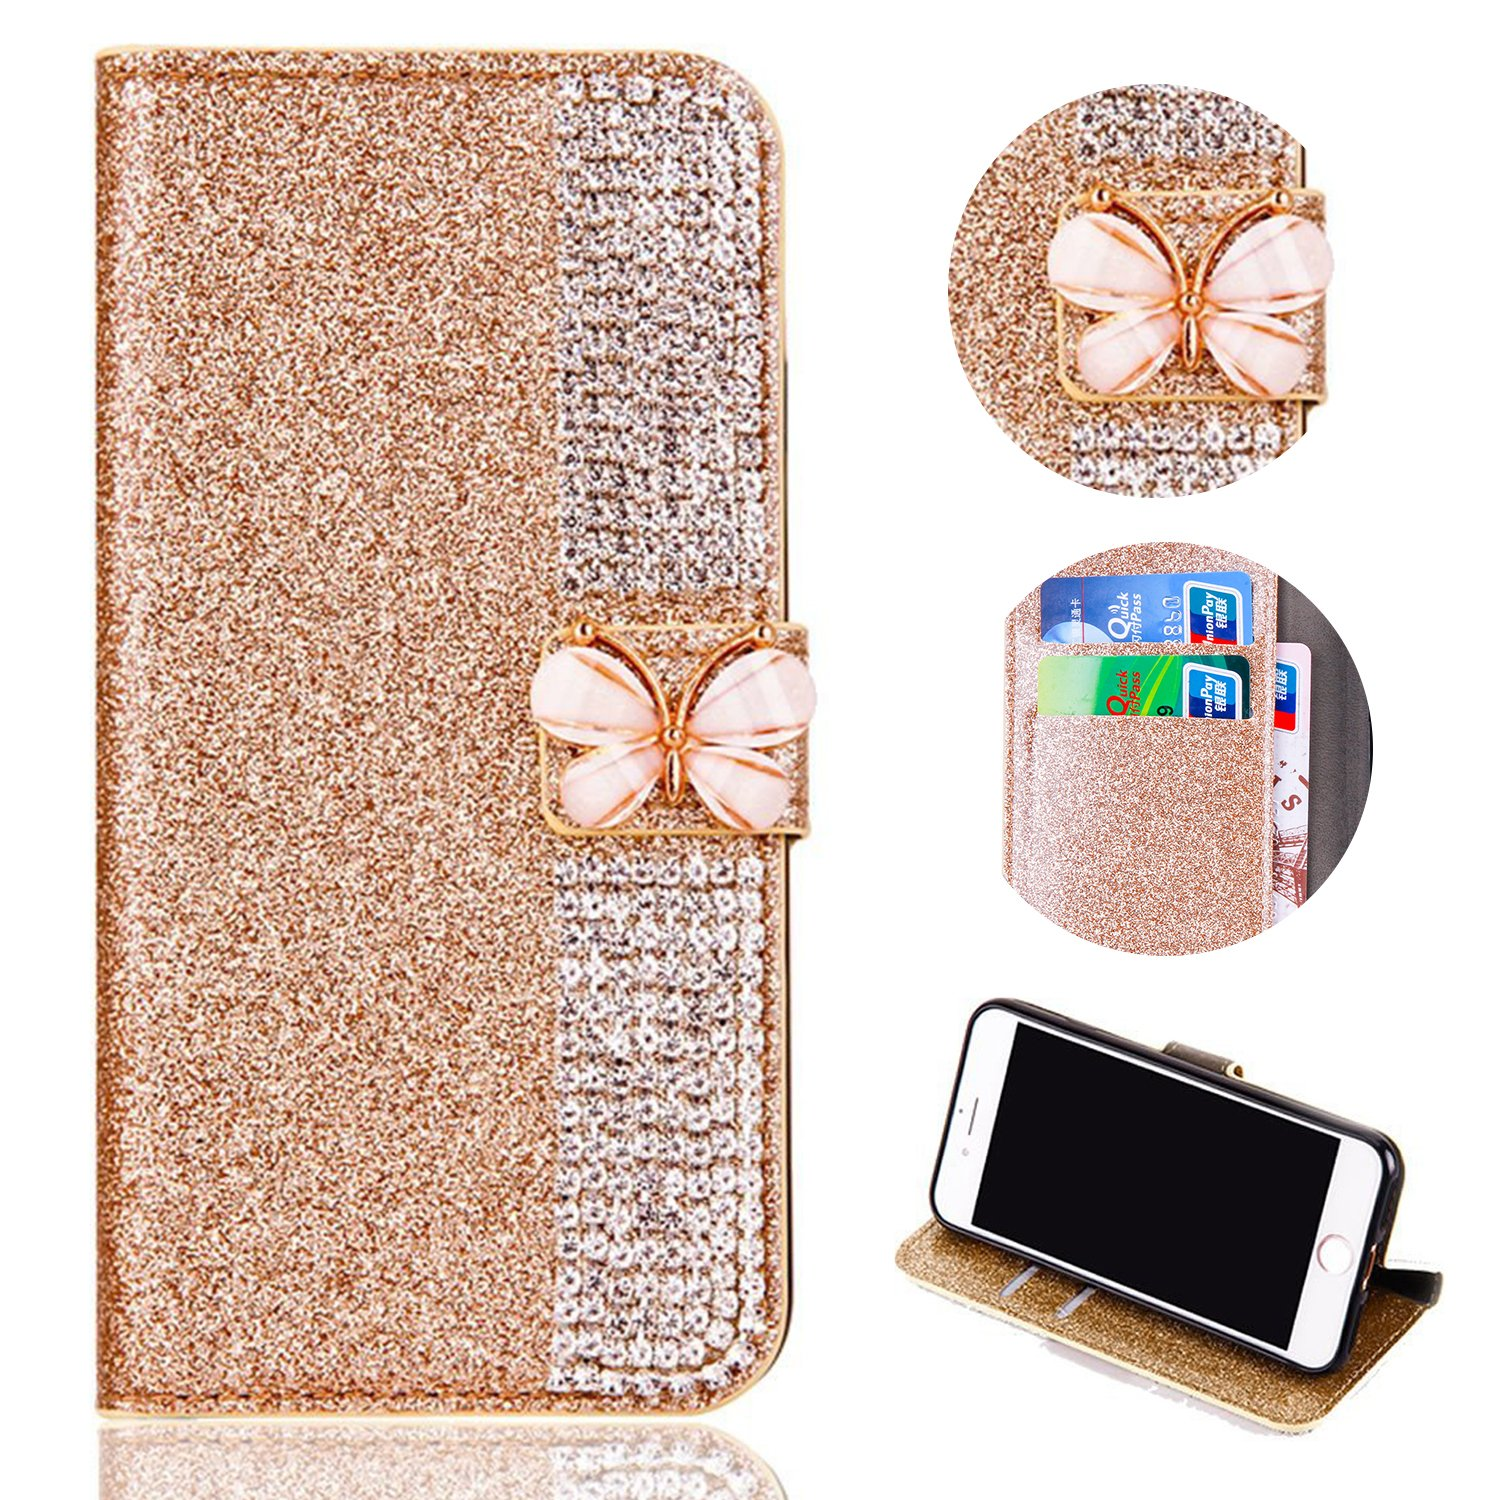 Bling Glitter Case for iPhone XR 6.1 inch,Shinyzone Luxury Diamond [3D Butterfly Magnetic Buckle] [Stand Feature] PU Leather Wallet Protective Cover for iPhone XR 6.1 inch,Golden